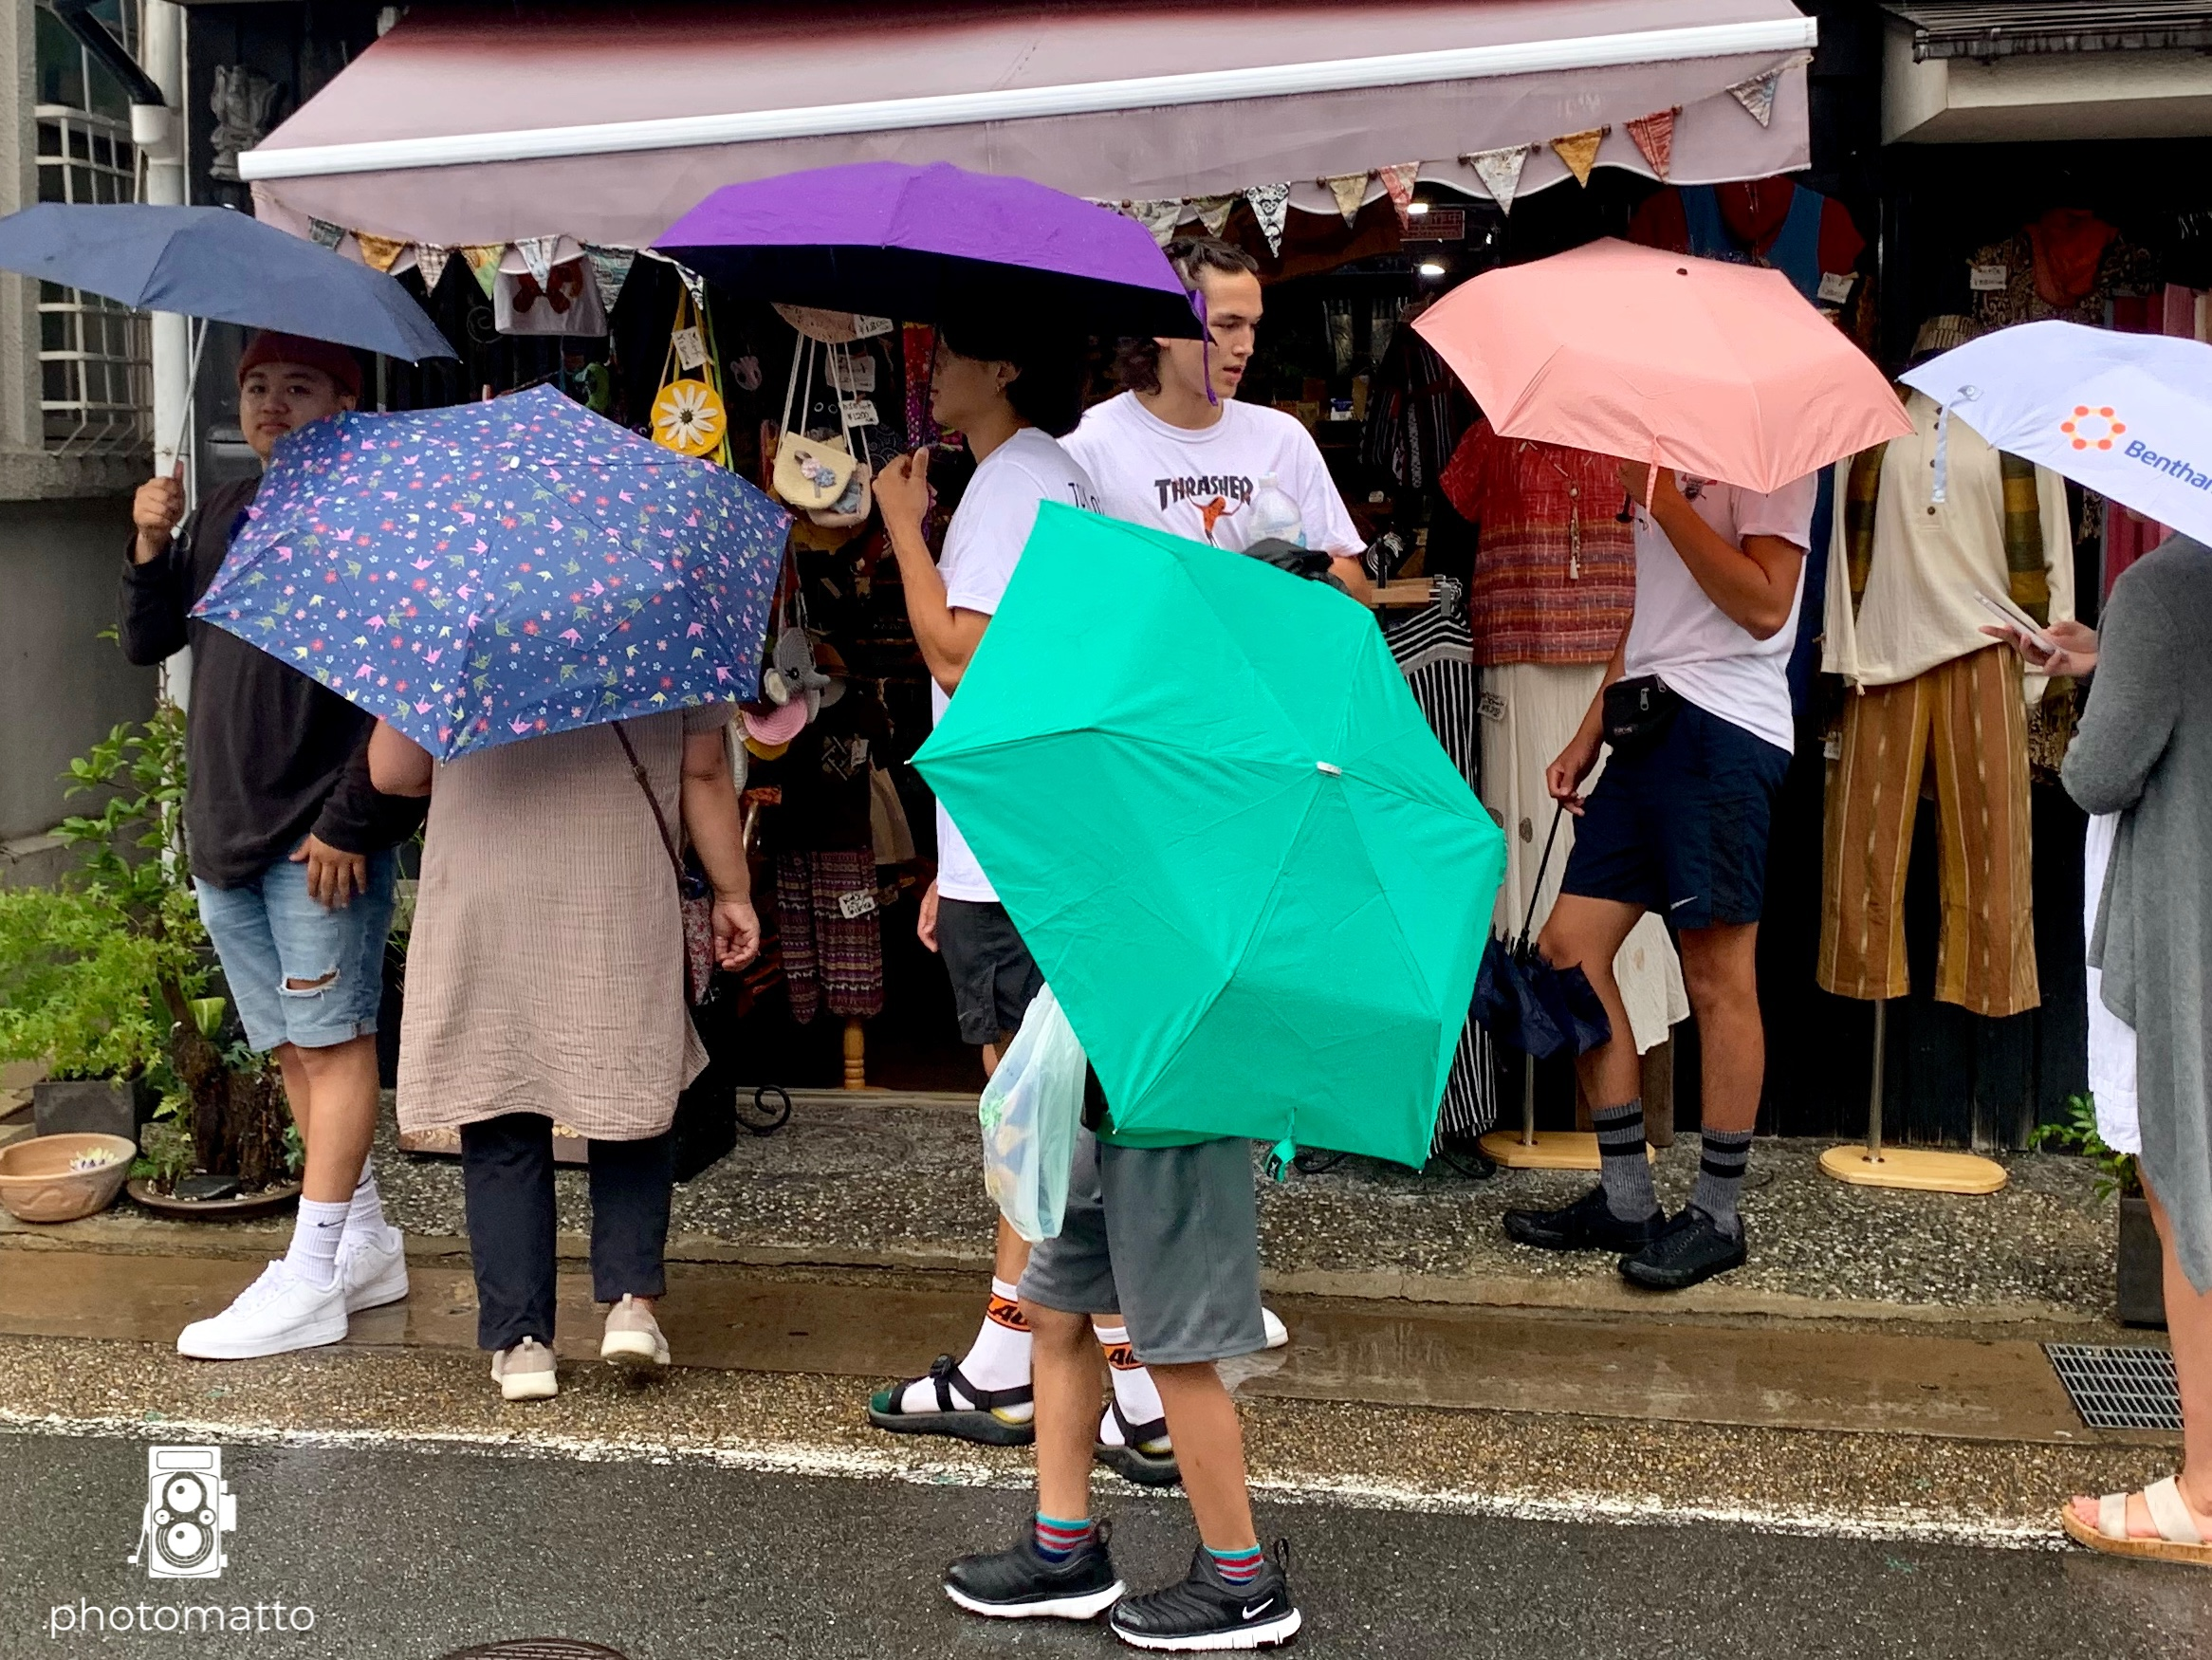 … and we quickly bought more umbrellas for everyone.